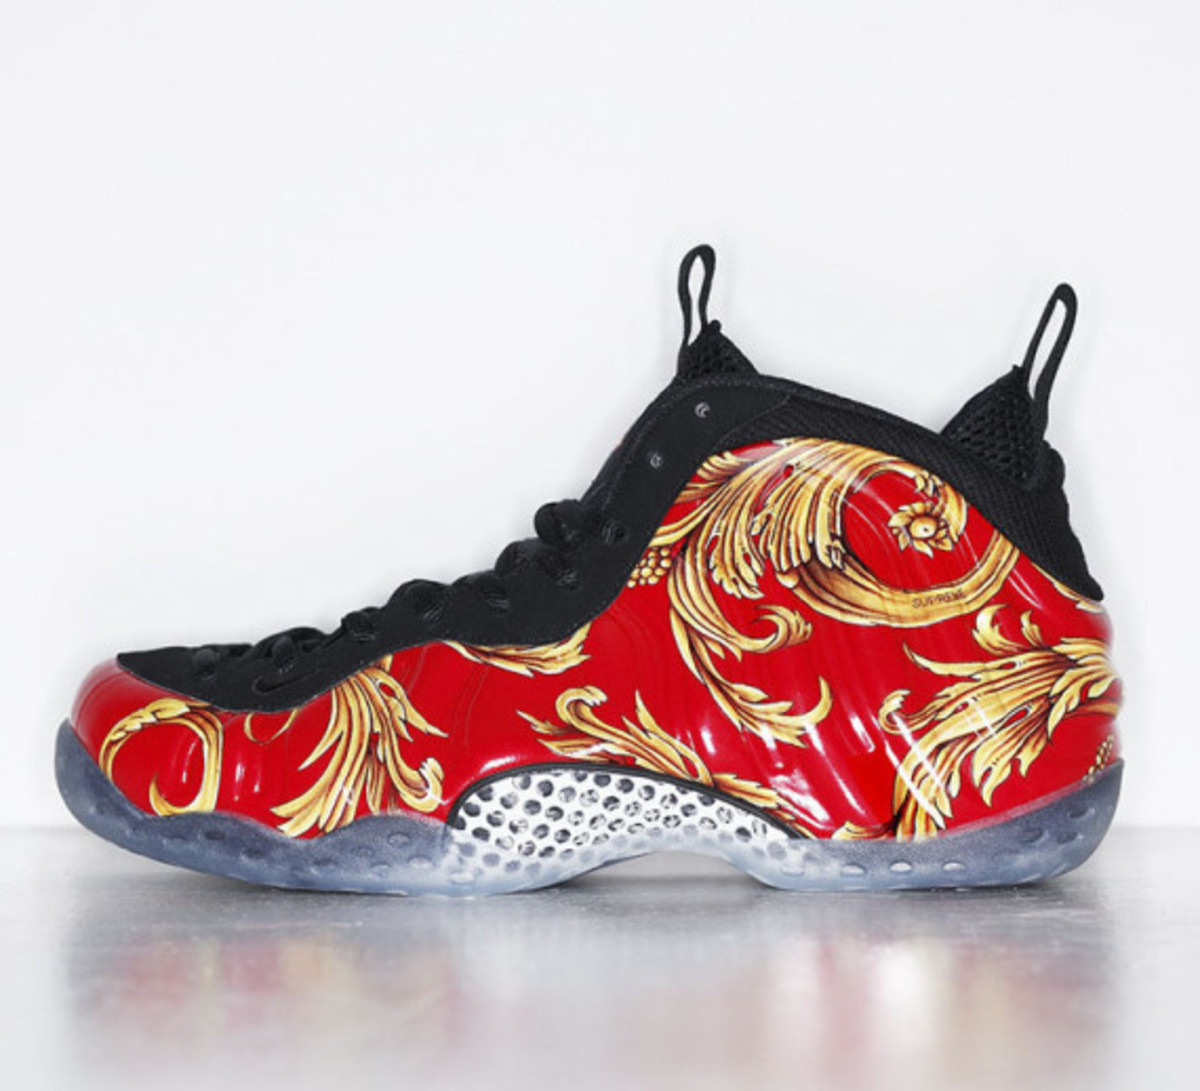 Supreme x Nike Air Foamposite 1 Collection | Available Now - 5